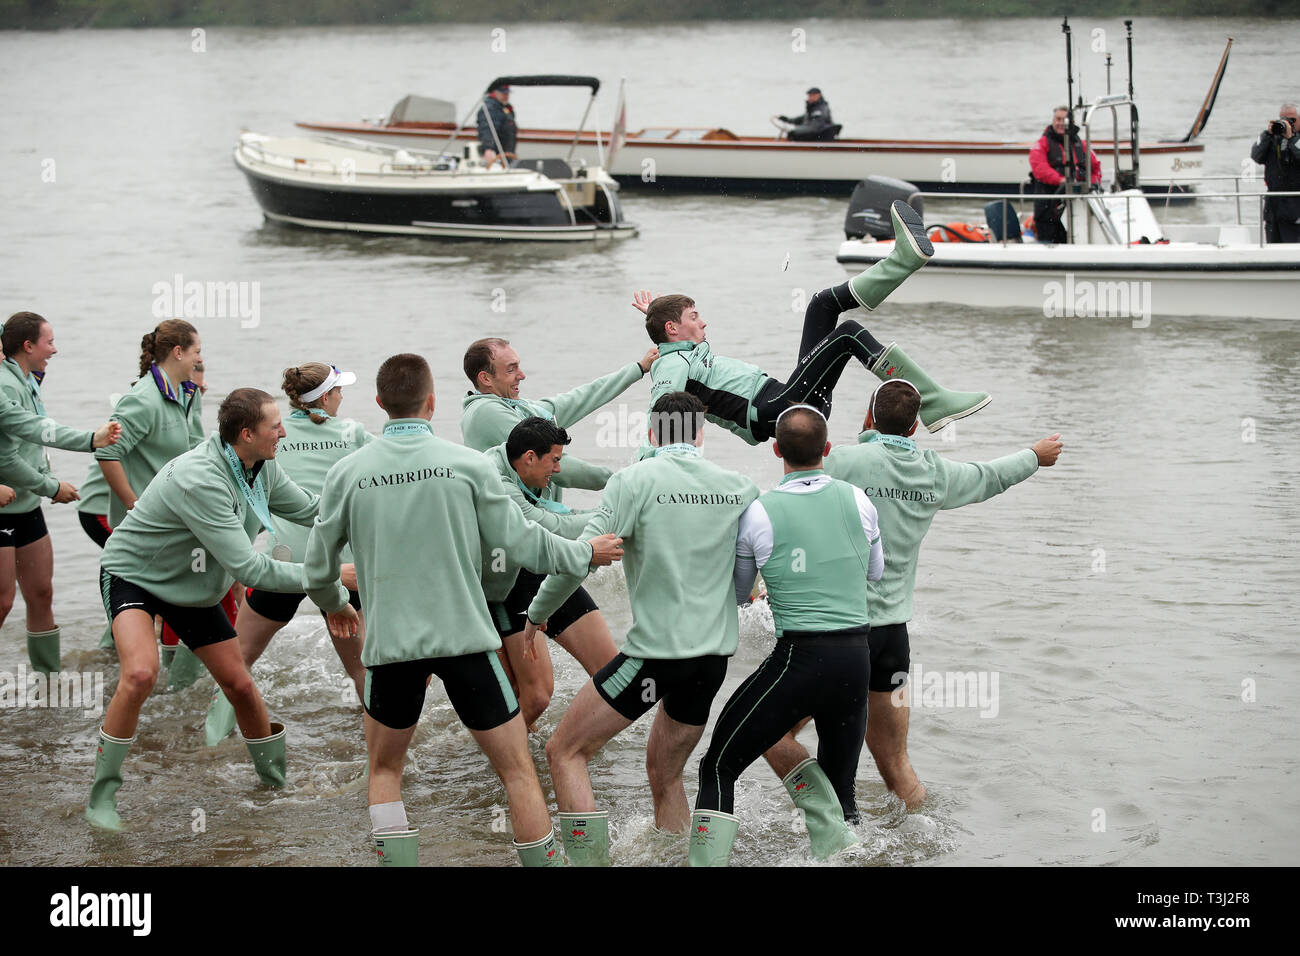 Cambridge cox Matthew Holland is thrown in the water after winning the during the Men's Boat Race on the River Thames, London. Stock Photo